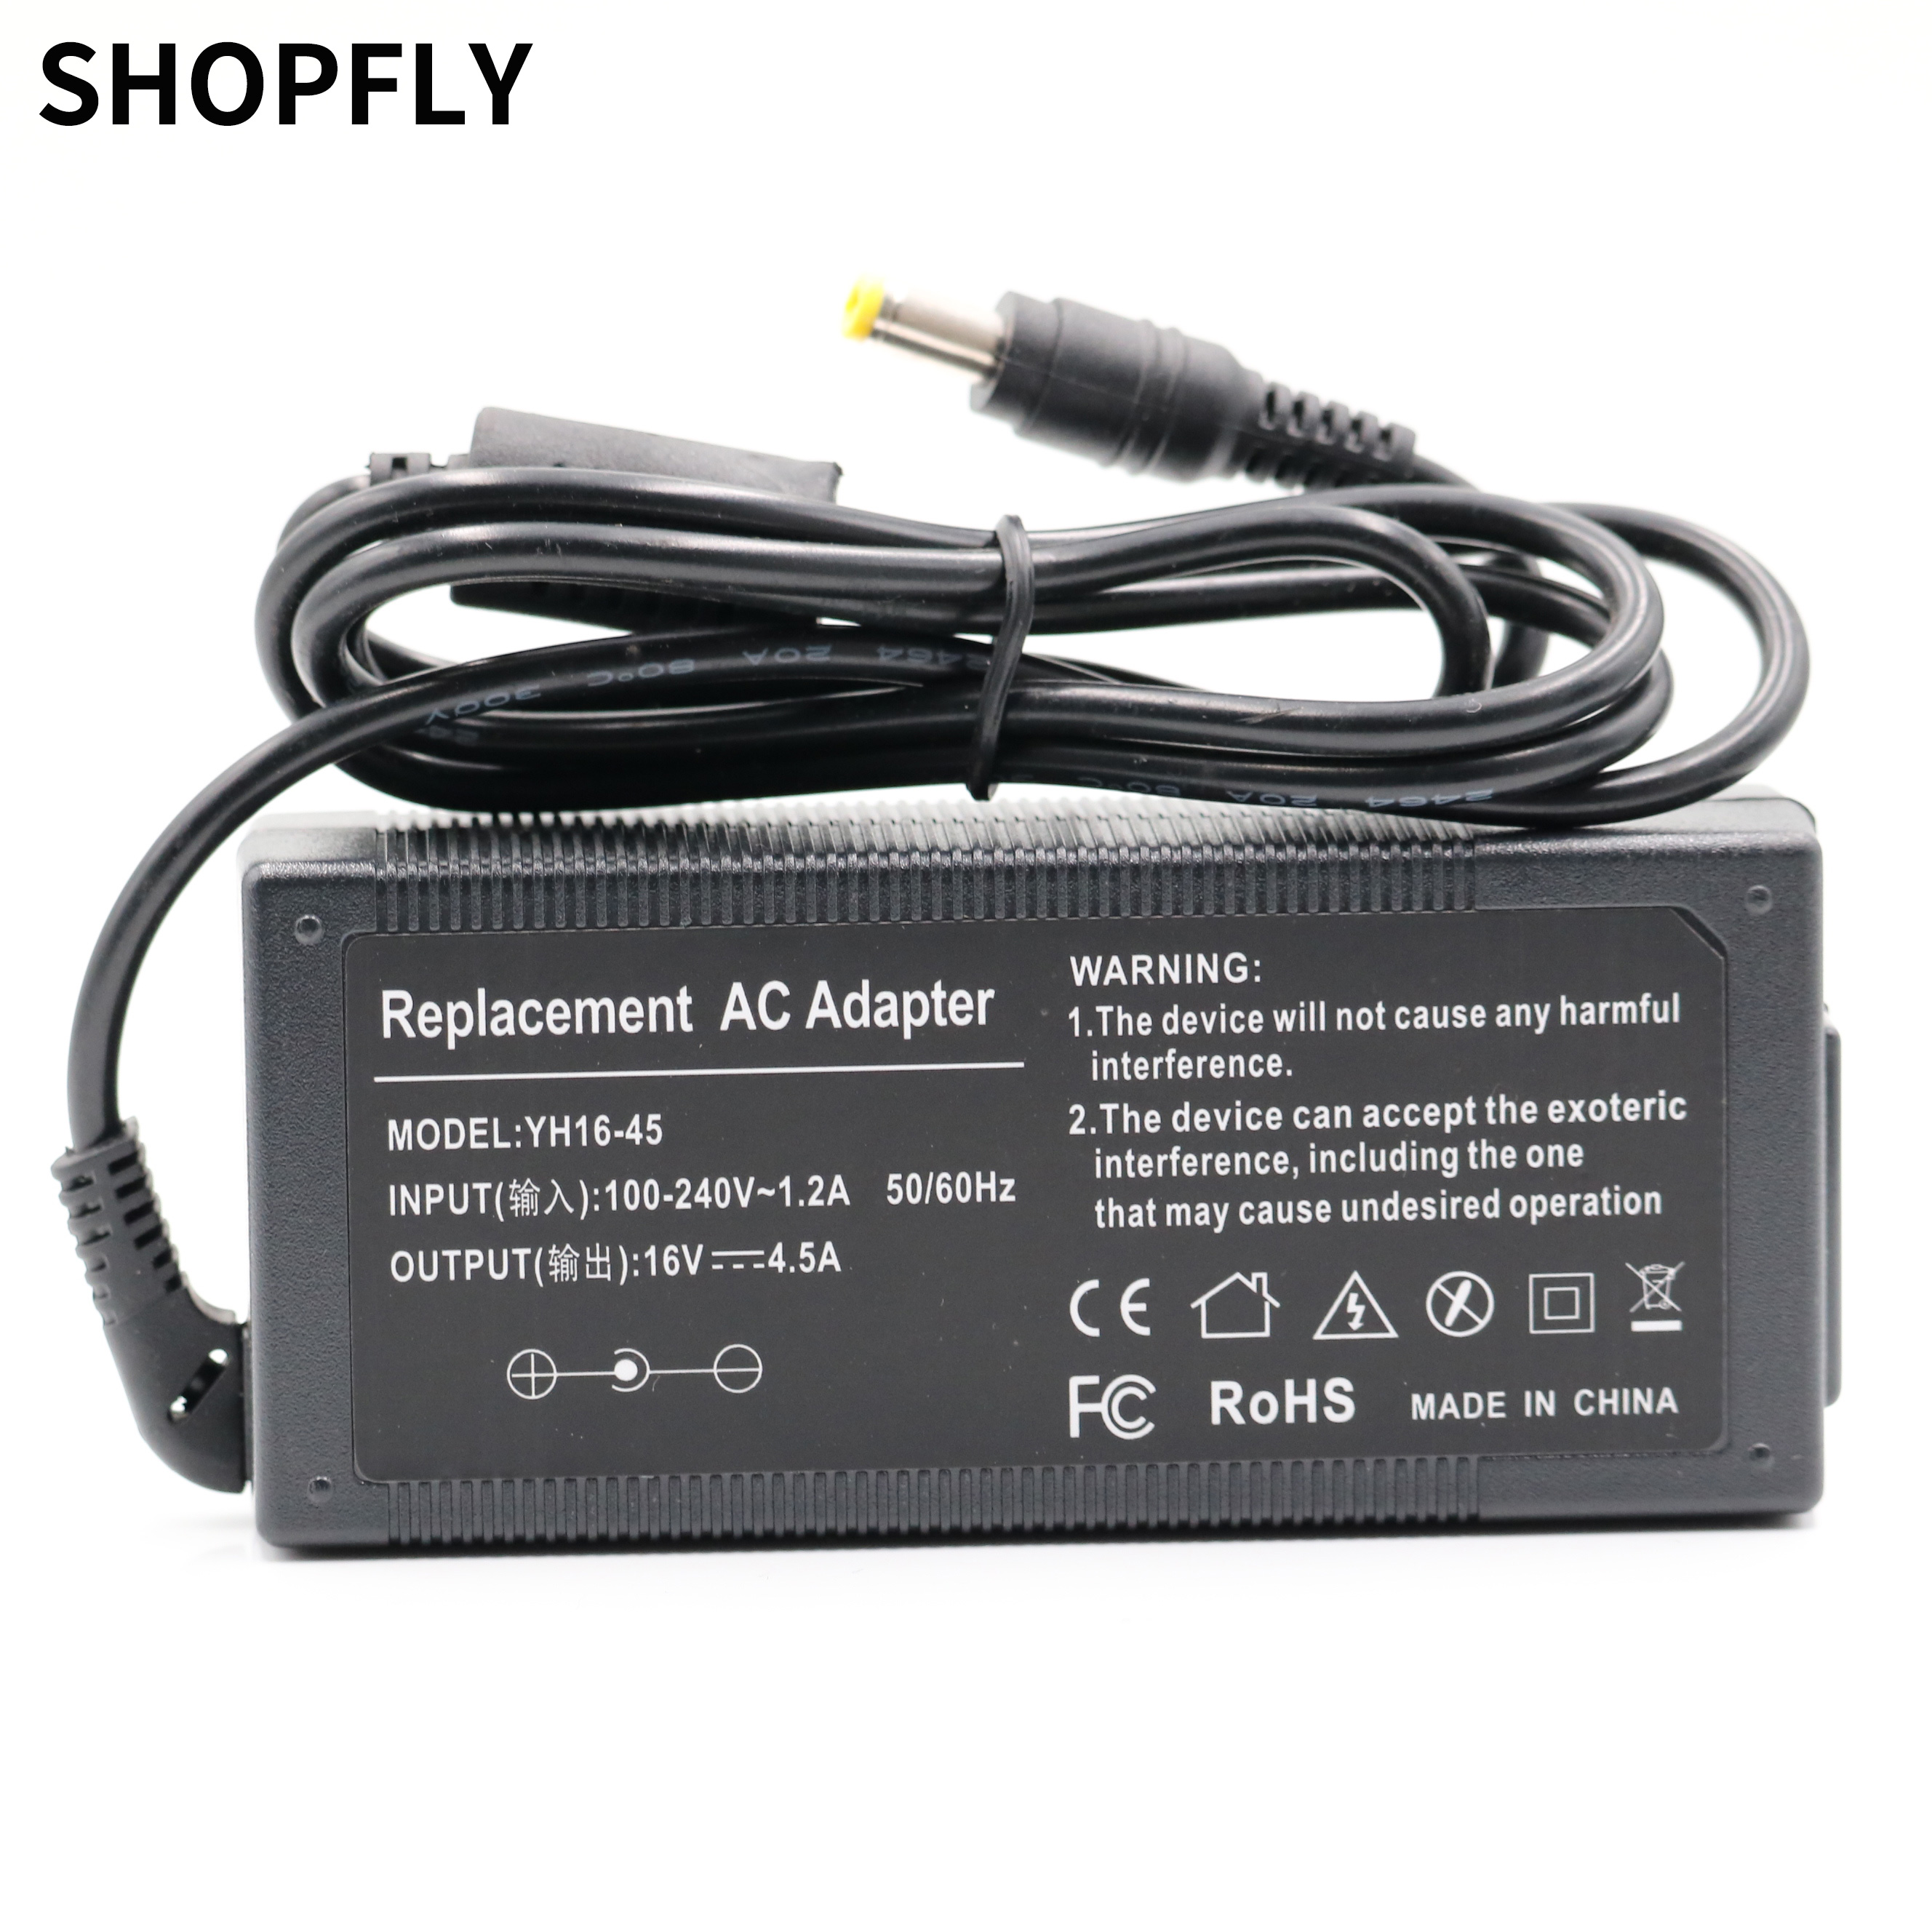 16V 4.5A 72W AC /DC Power Supply Adapter Battery Charger for Panasonic ToughBook CF 18 CF 19 CF51 CF73 CF 29|Laptop Adapter| |  - title=